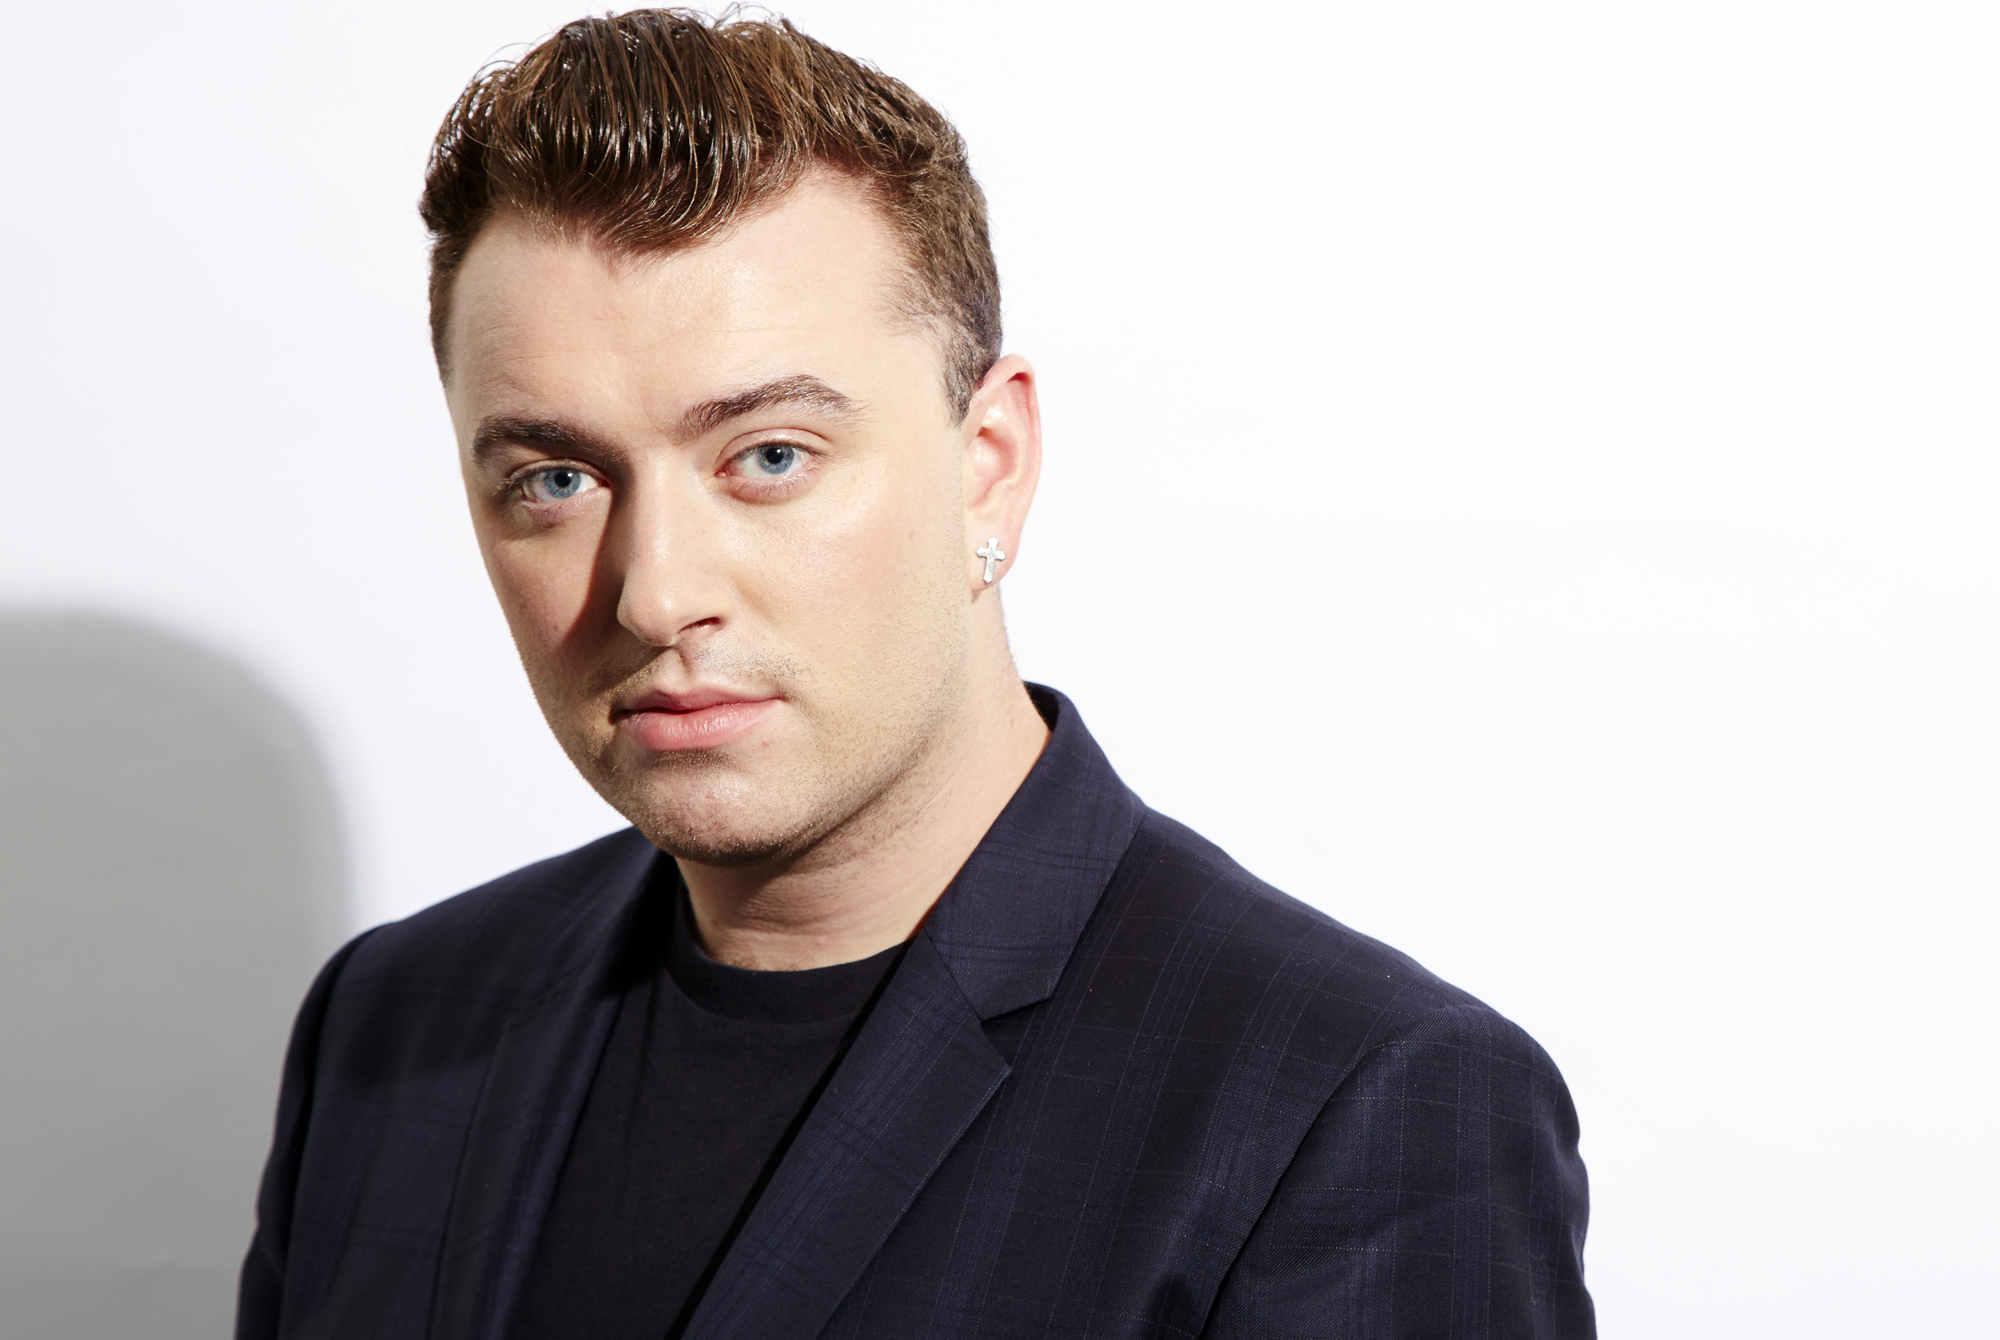 sam smith height